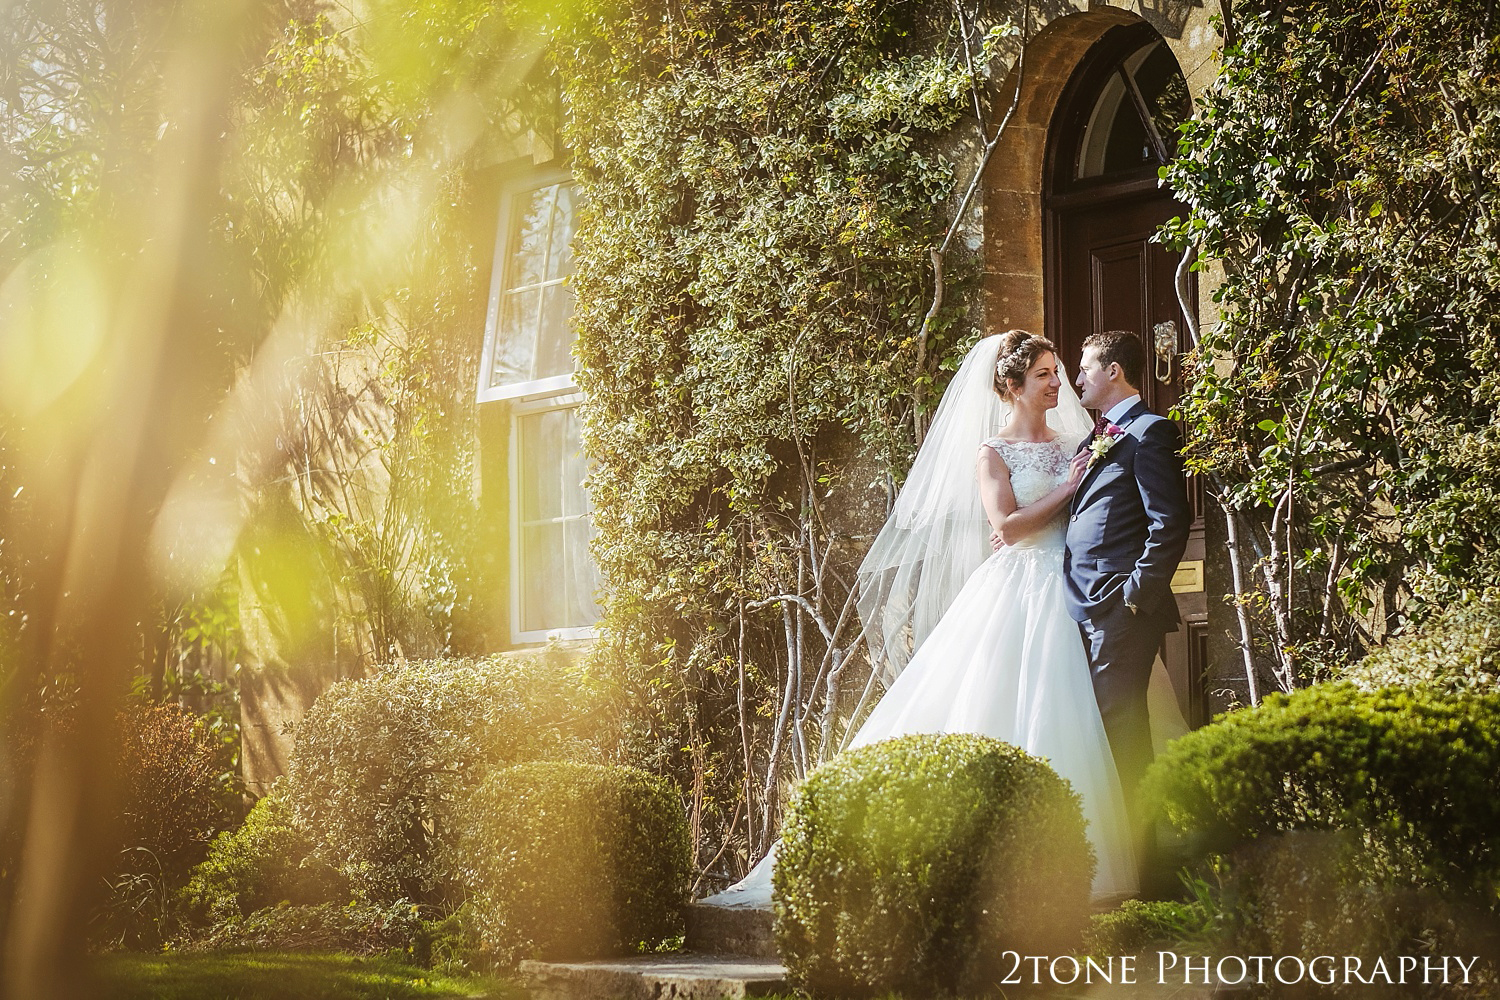 Wedding photography at Haselbury Mill and the Old Tythe Barn in Somerset by www.2tonephotography.co.uk